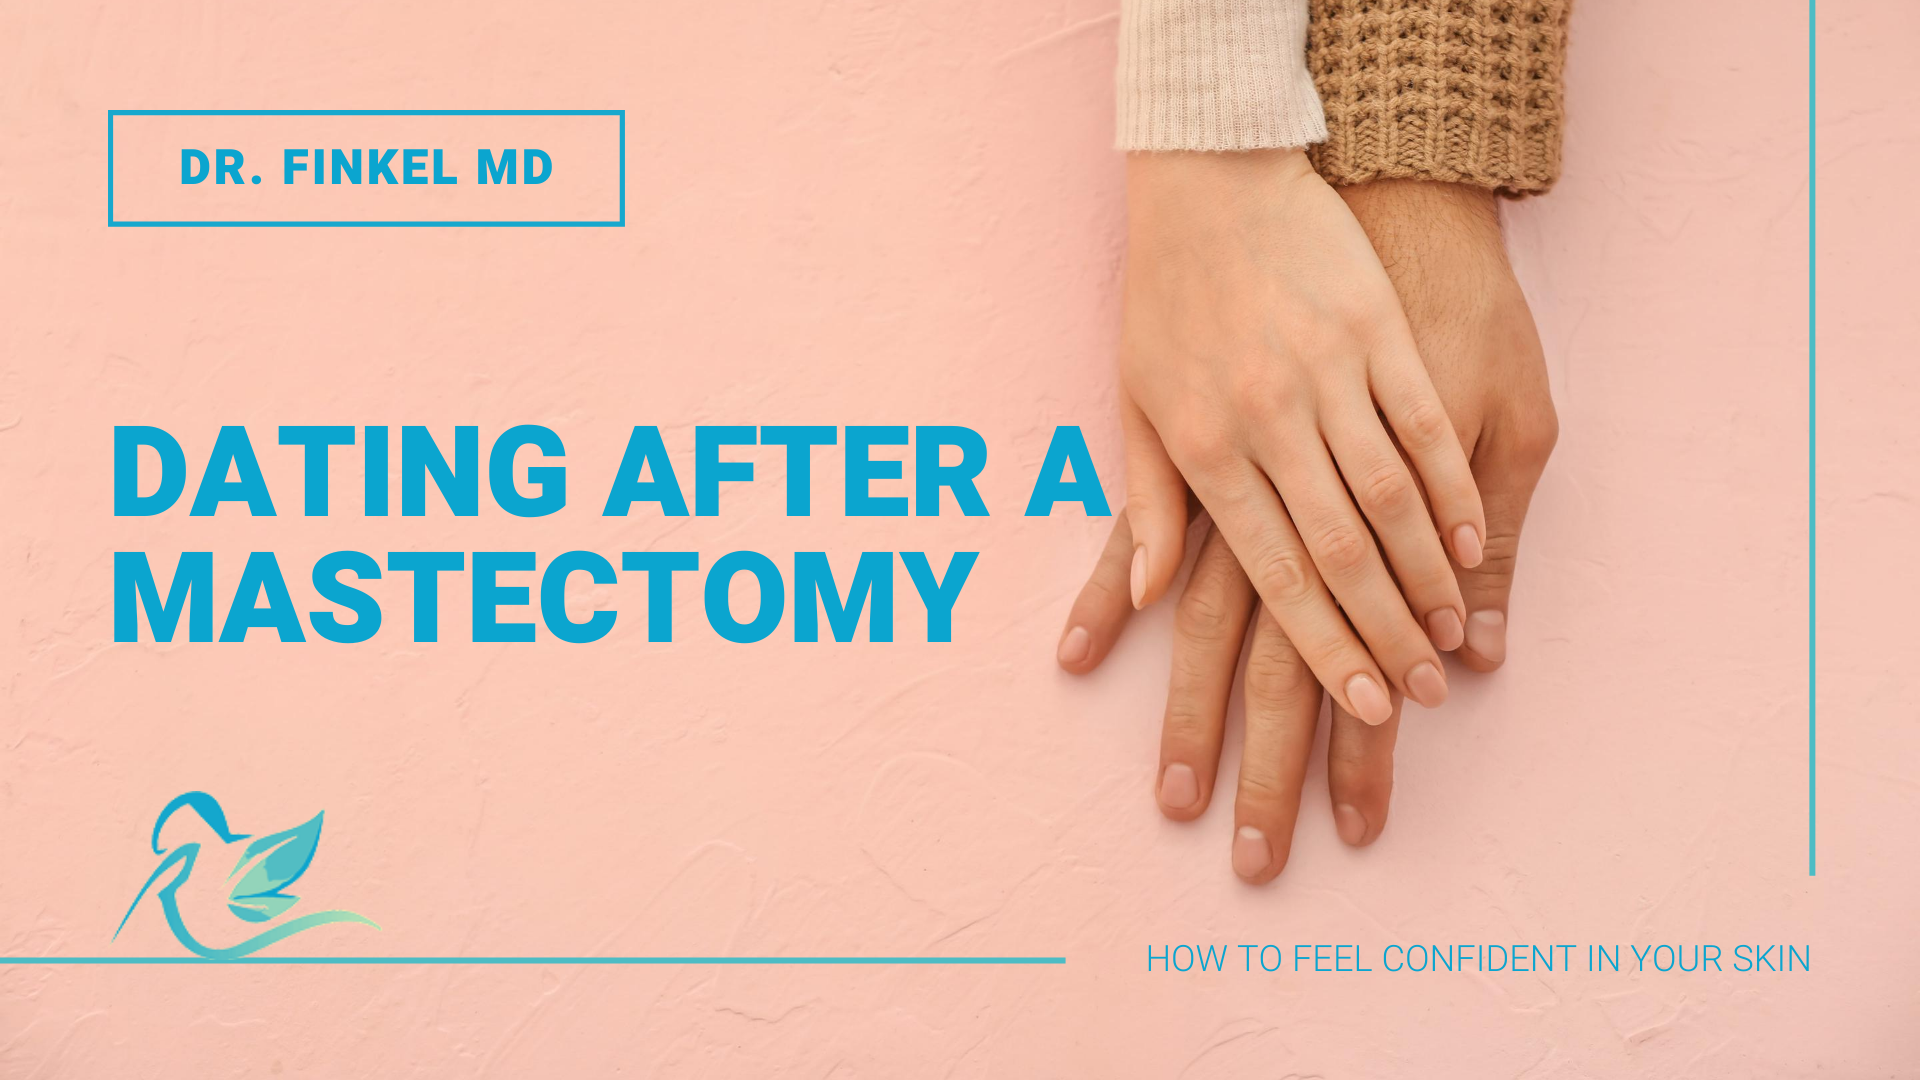 Dating After A Mastectomy - How to Feel Confident in your Skin